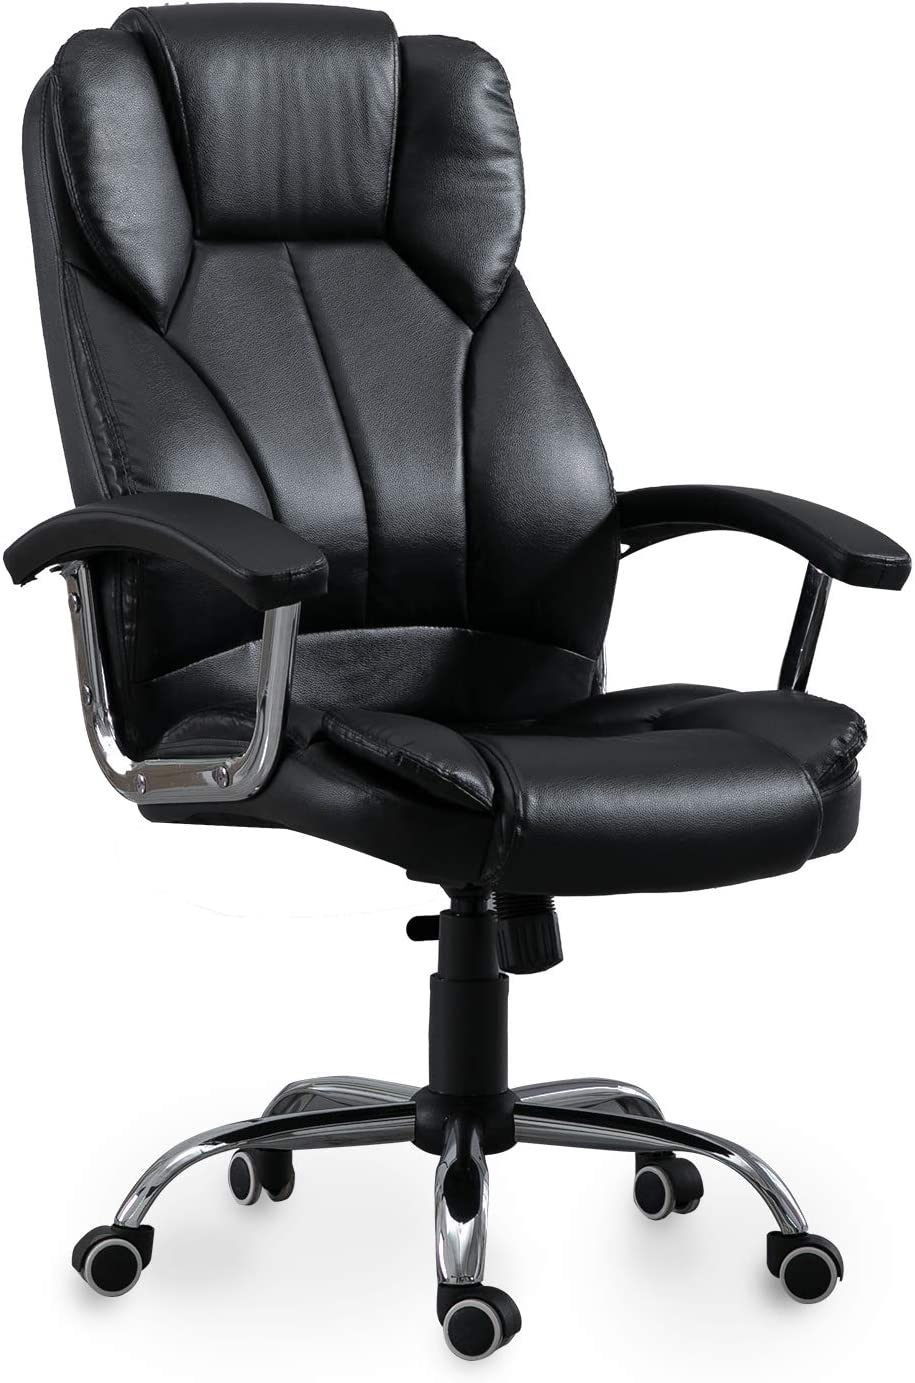 Samincom Office Chair with High Back Large Seat and Tilt Function Executive Swivel Computer Chair PU (Black)